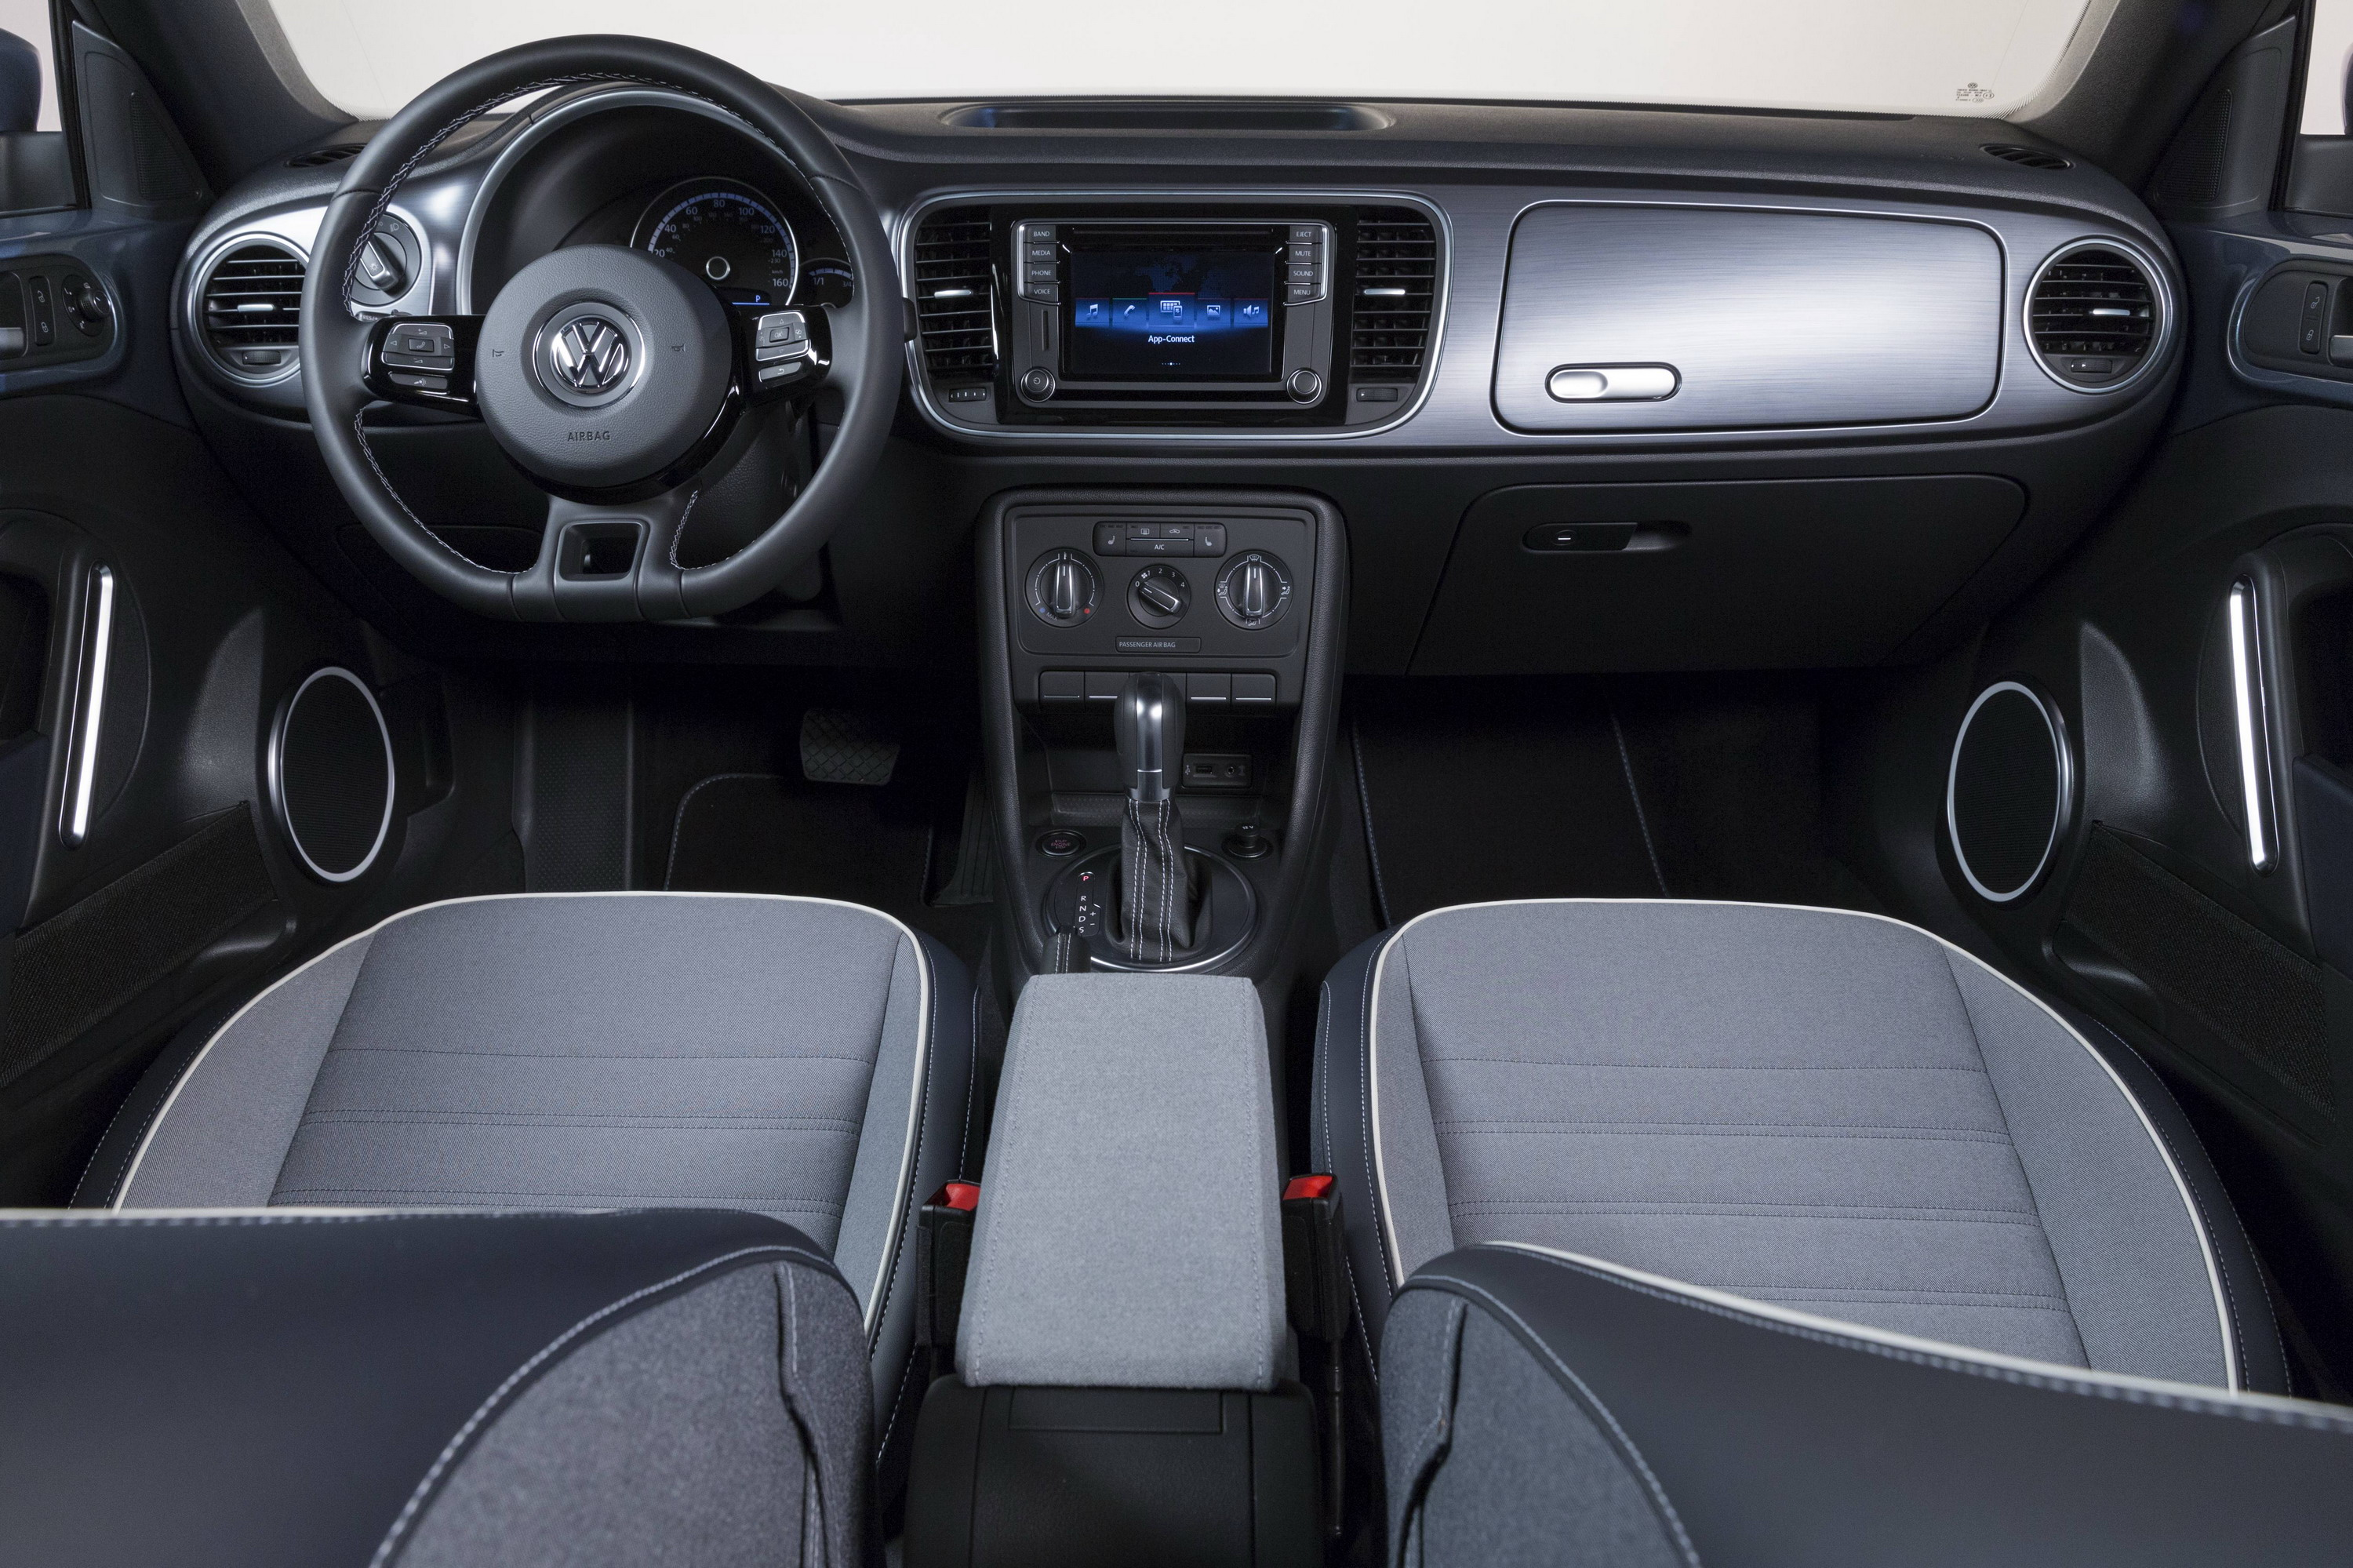 volkswagen car edition driver test reviews and original denim beetle photo review s convertible